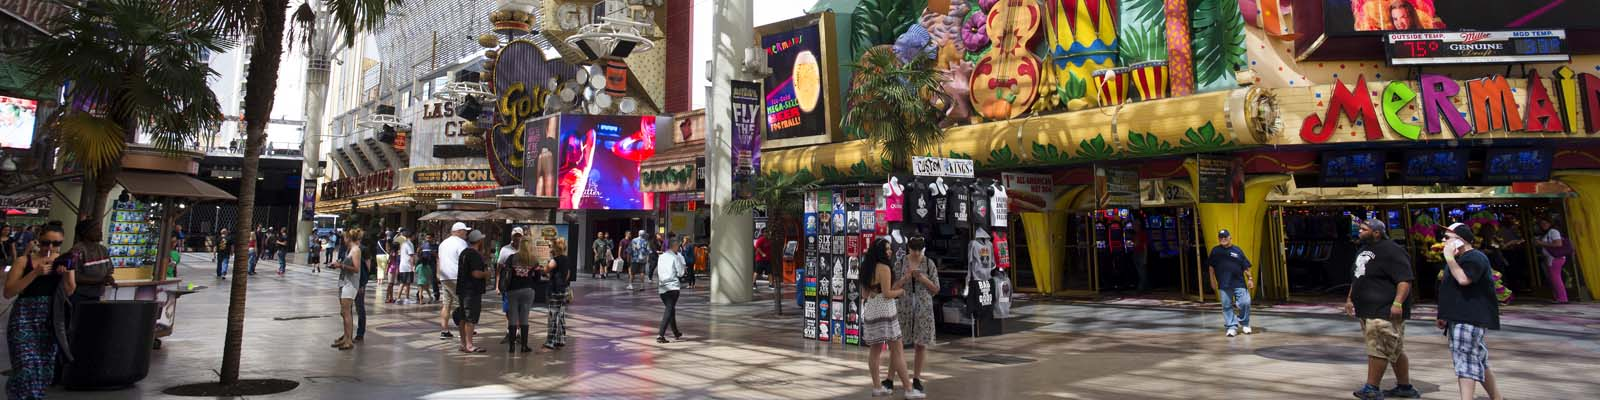 Pictured: Bazaar marketplace in Las Vegas, Nevada.